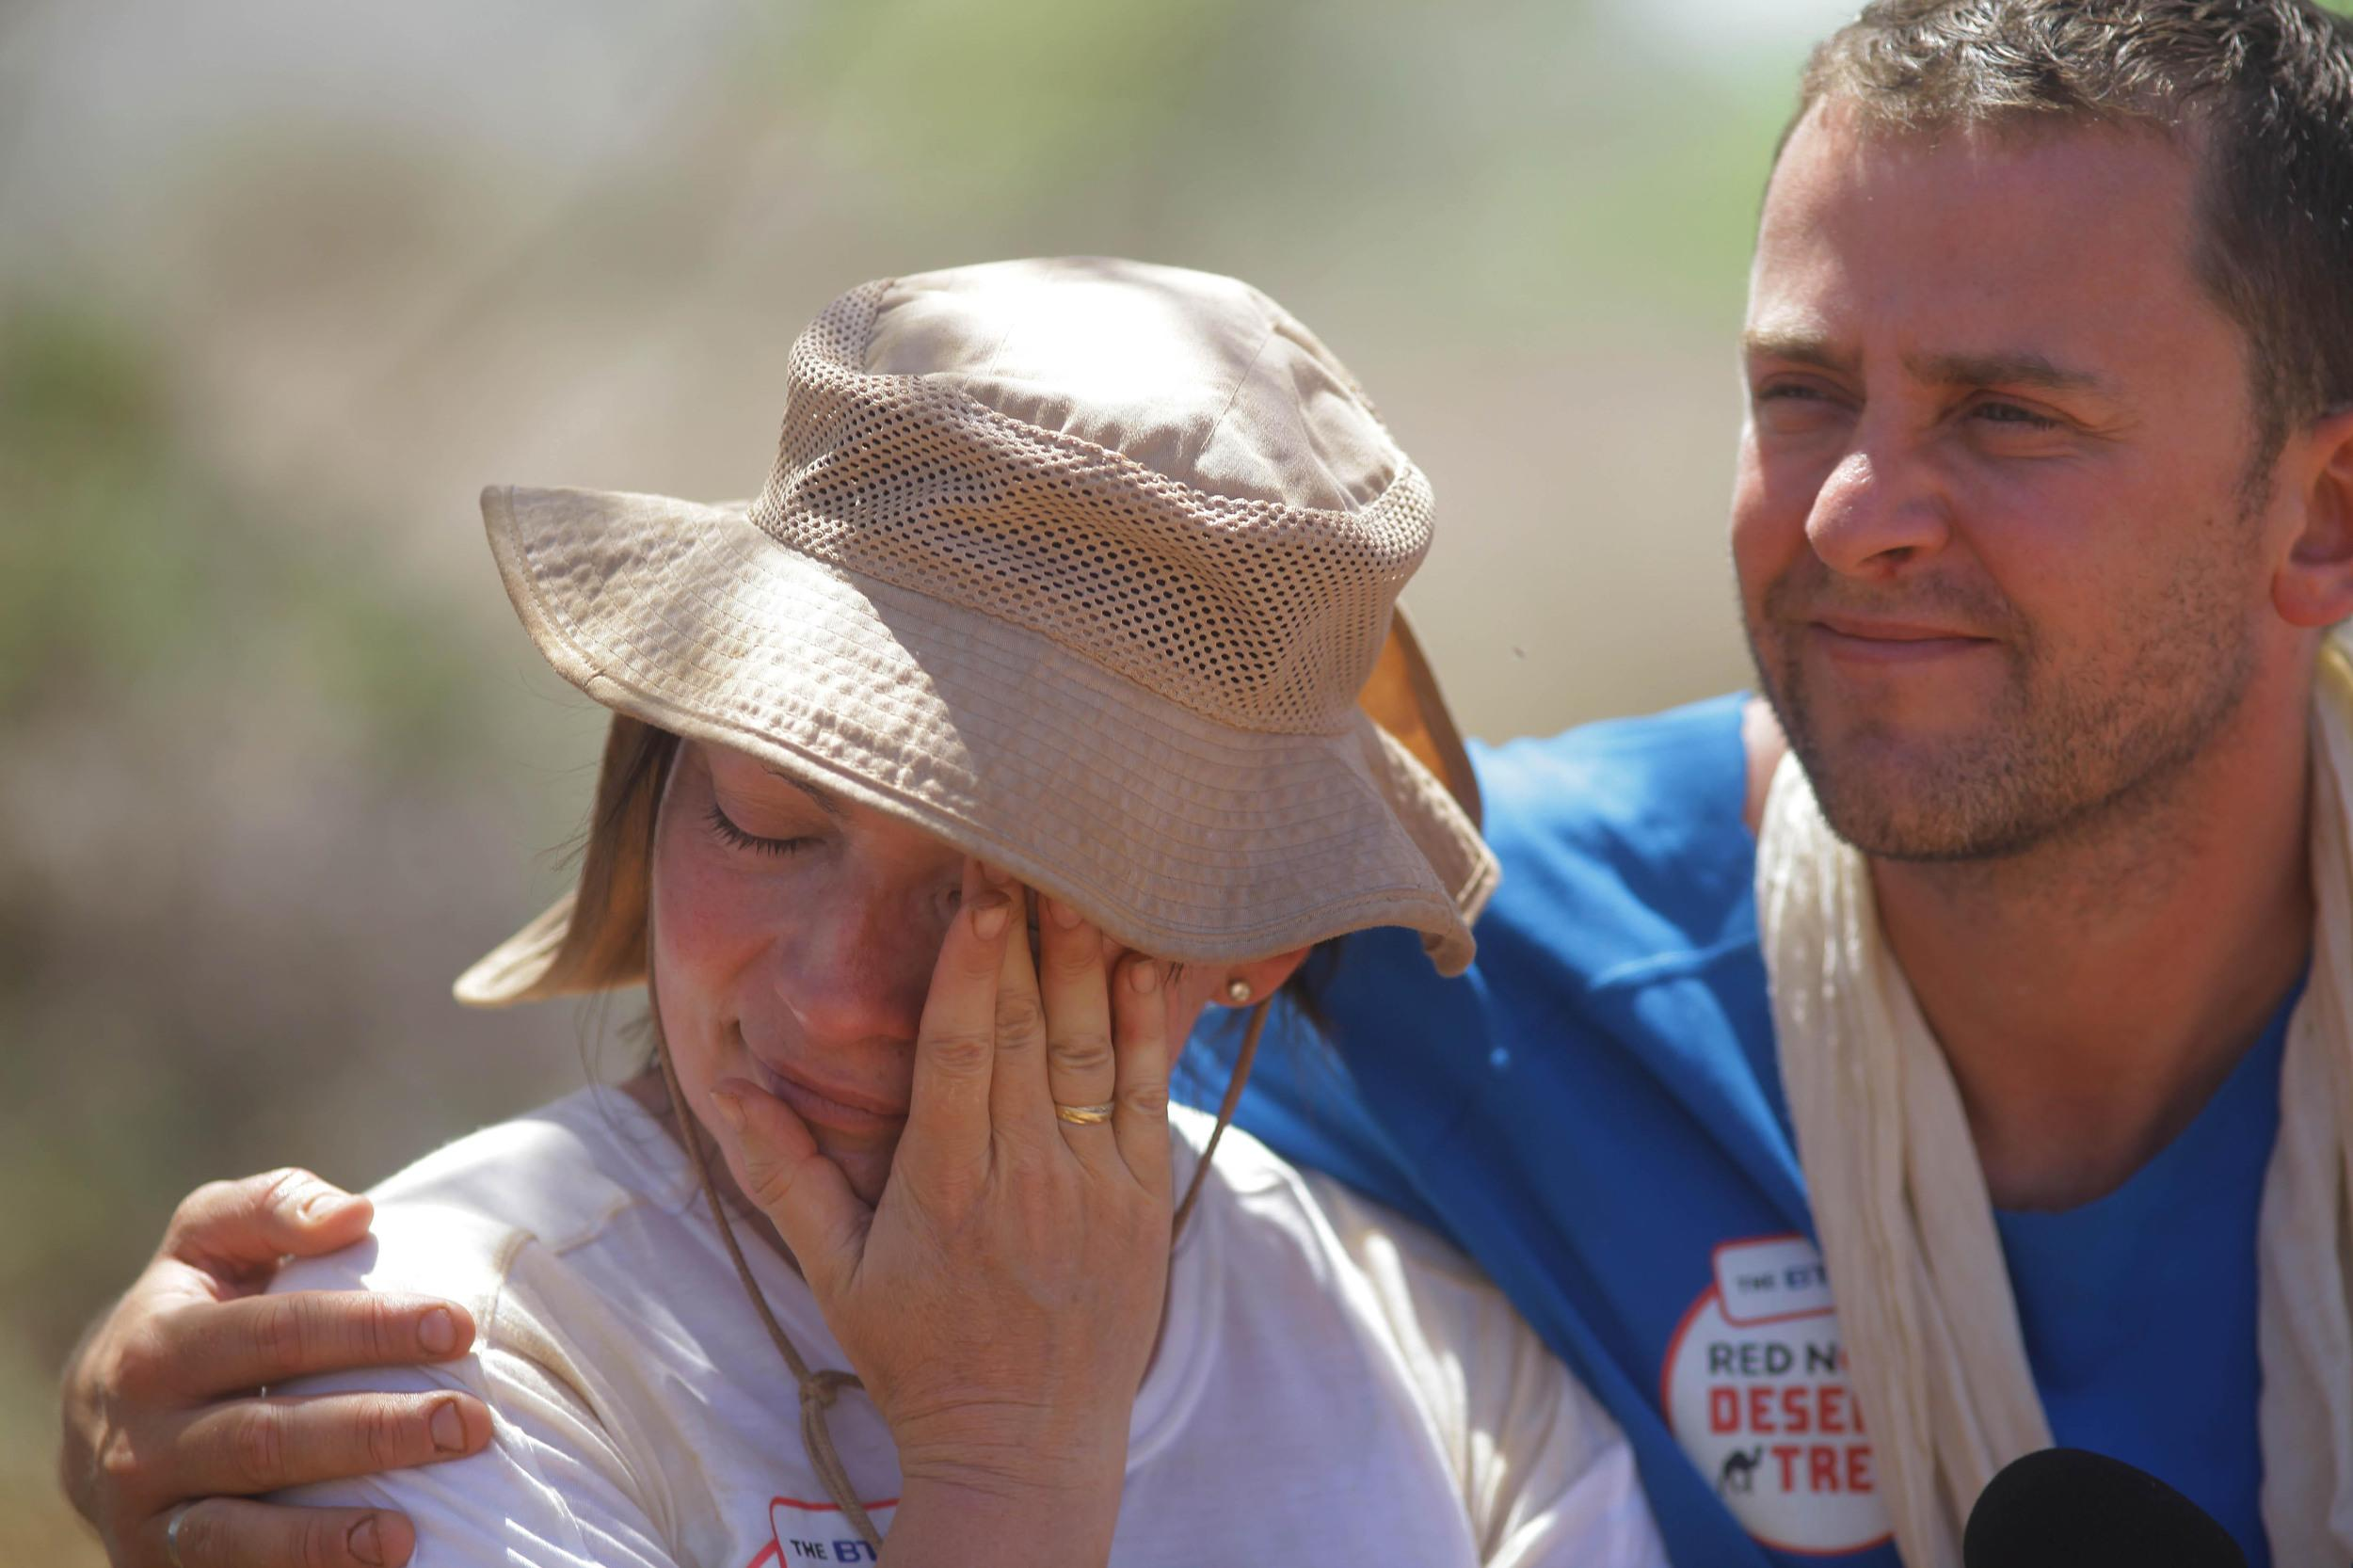 EDITORIAL USE ONLY. TO BE USED ONLY IN CONJUNCTION WITH THE STORY Handout photo issued by Comic Relief of Lorraine Kelly, comforted by Scott Mills as she cries after hearing a message from home live on Radio 1 on the last morning of the trek on day 5 of the BT Red Nose Desert Trek for Comic Relief in the Kaisut desert, Kenya.